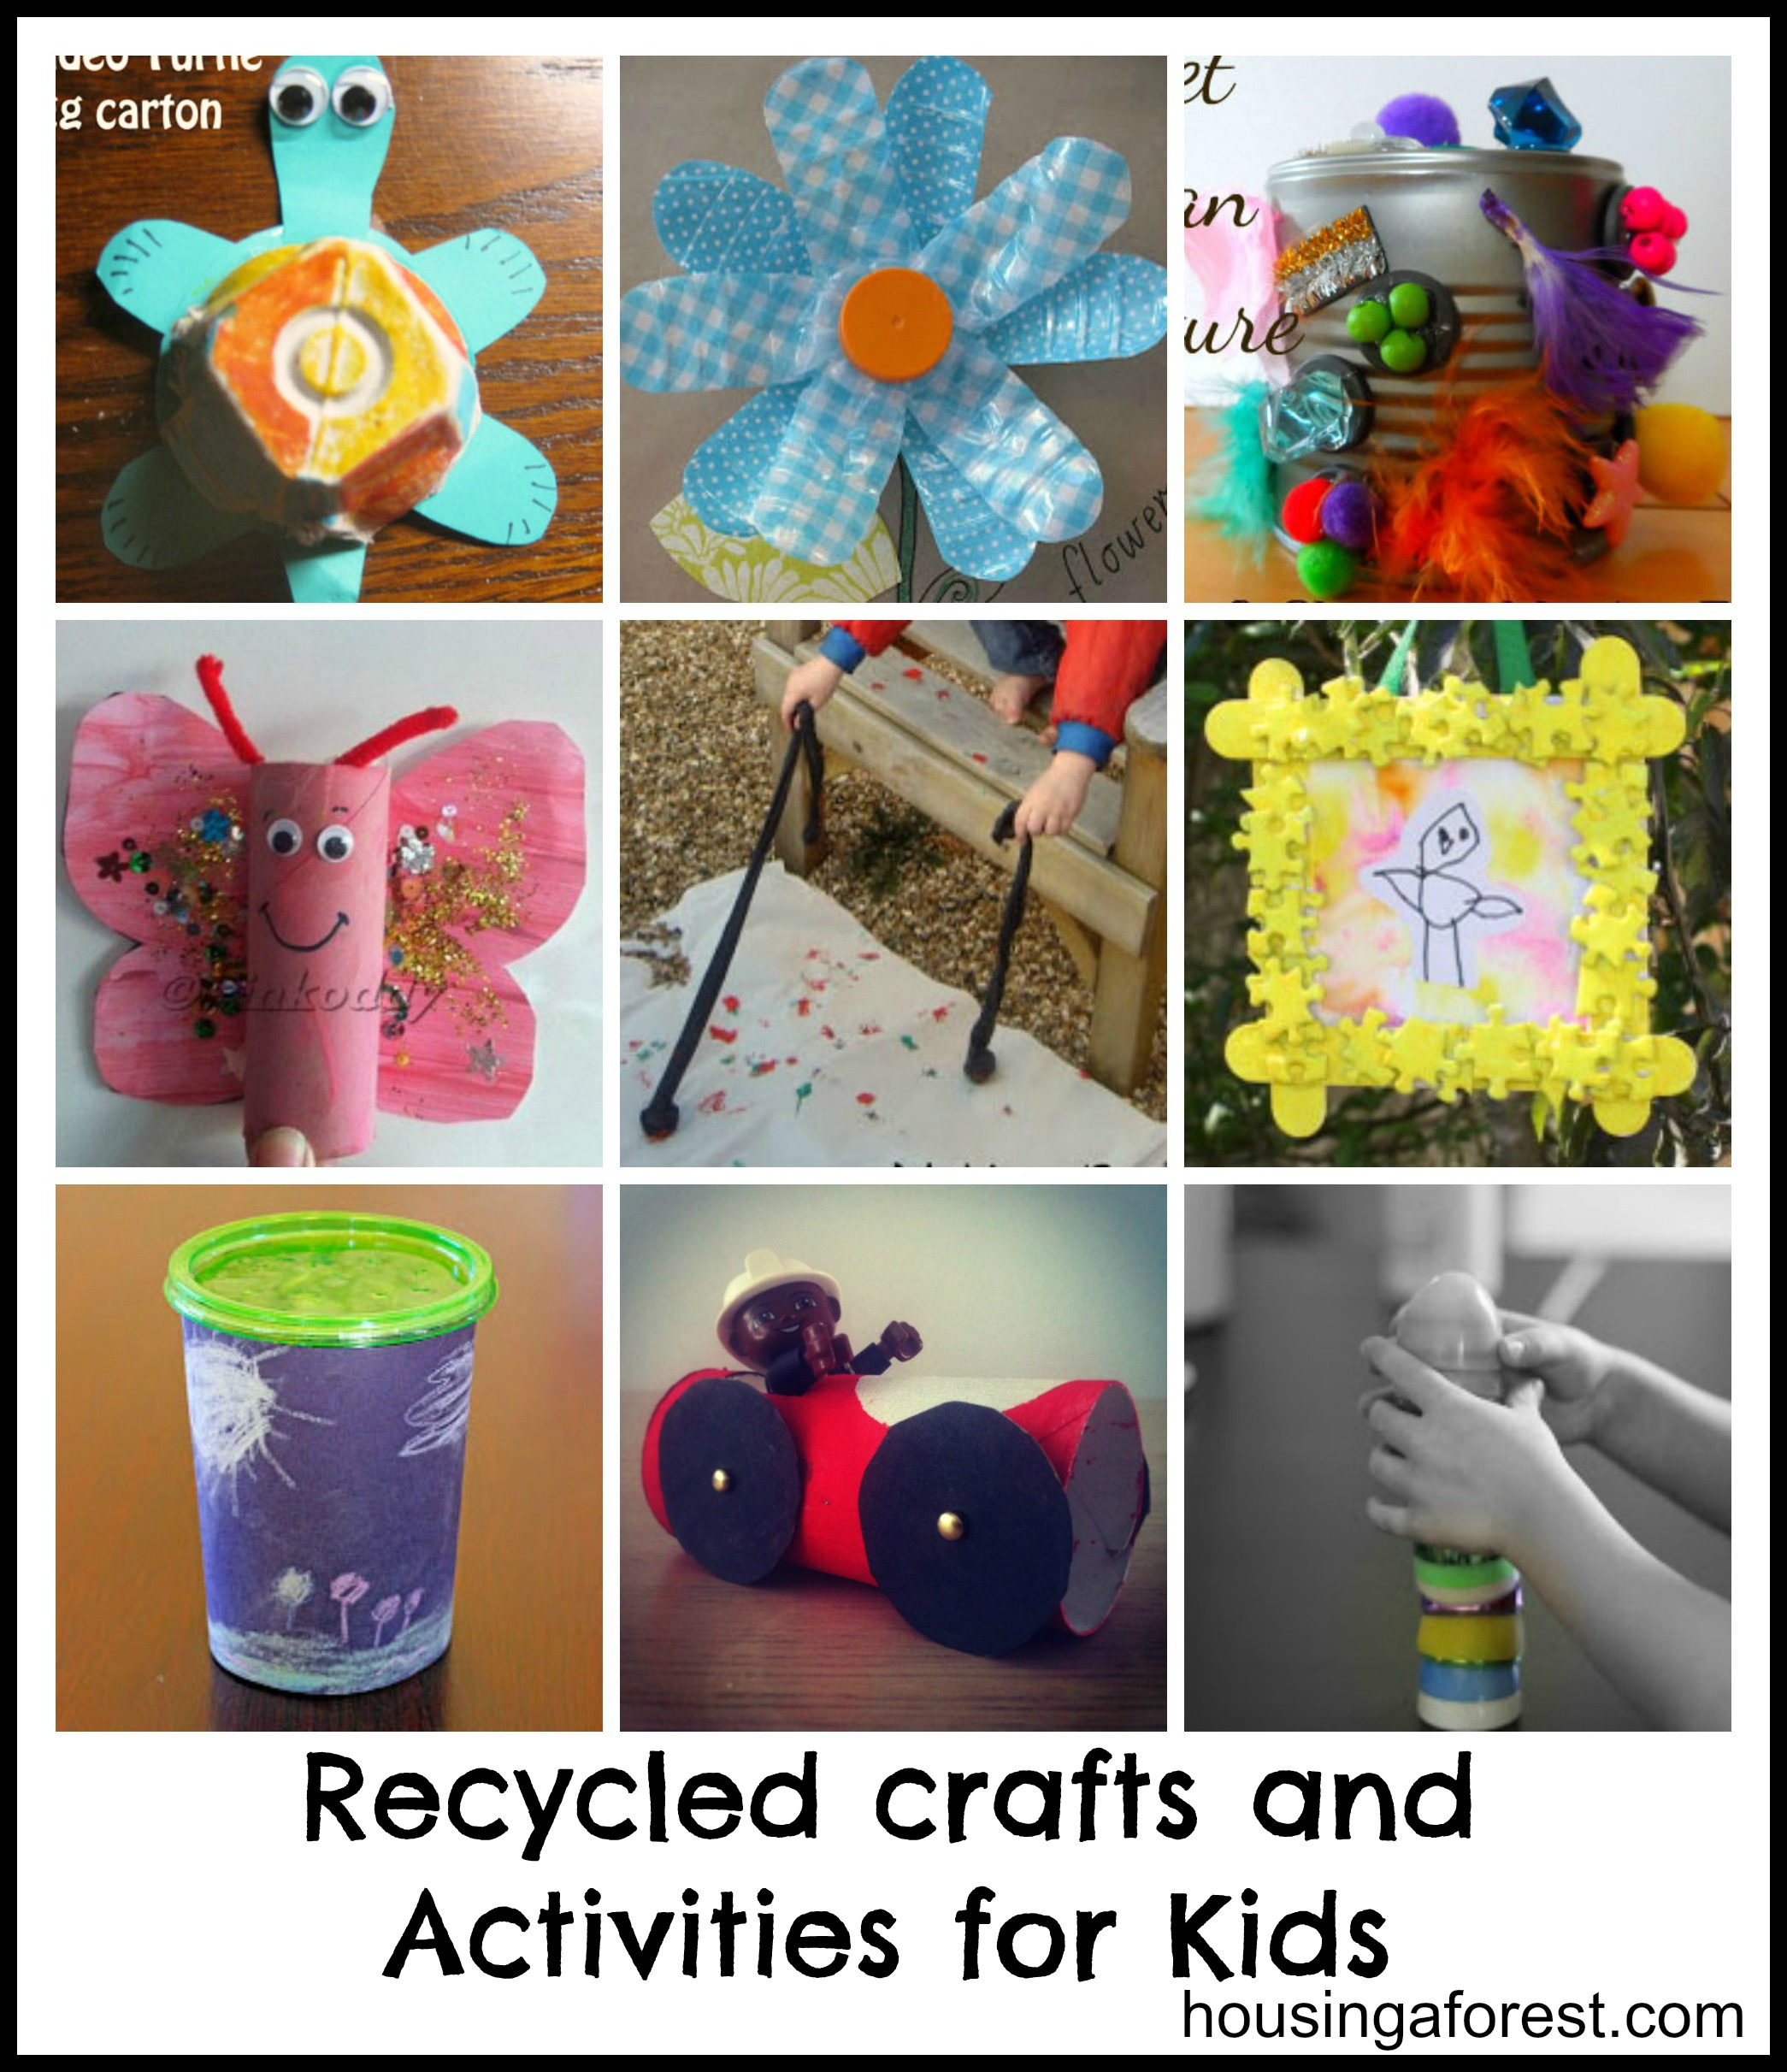 Recycled crafts and activities for kids housing a forest for Recycling ideas for kids